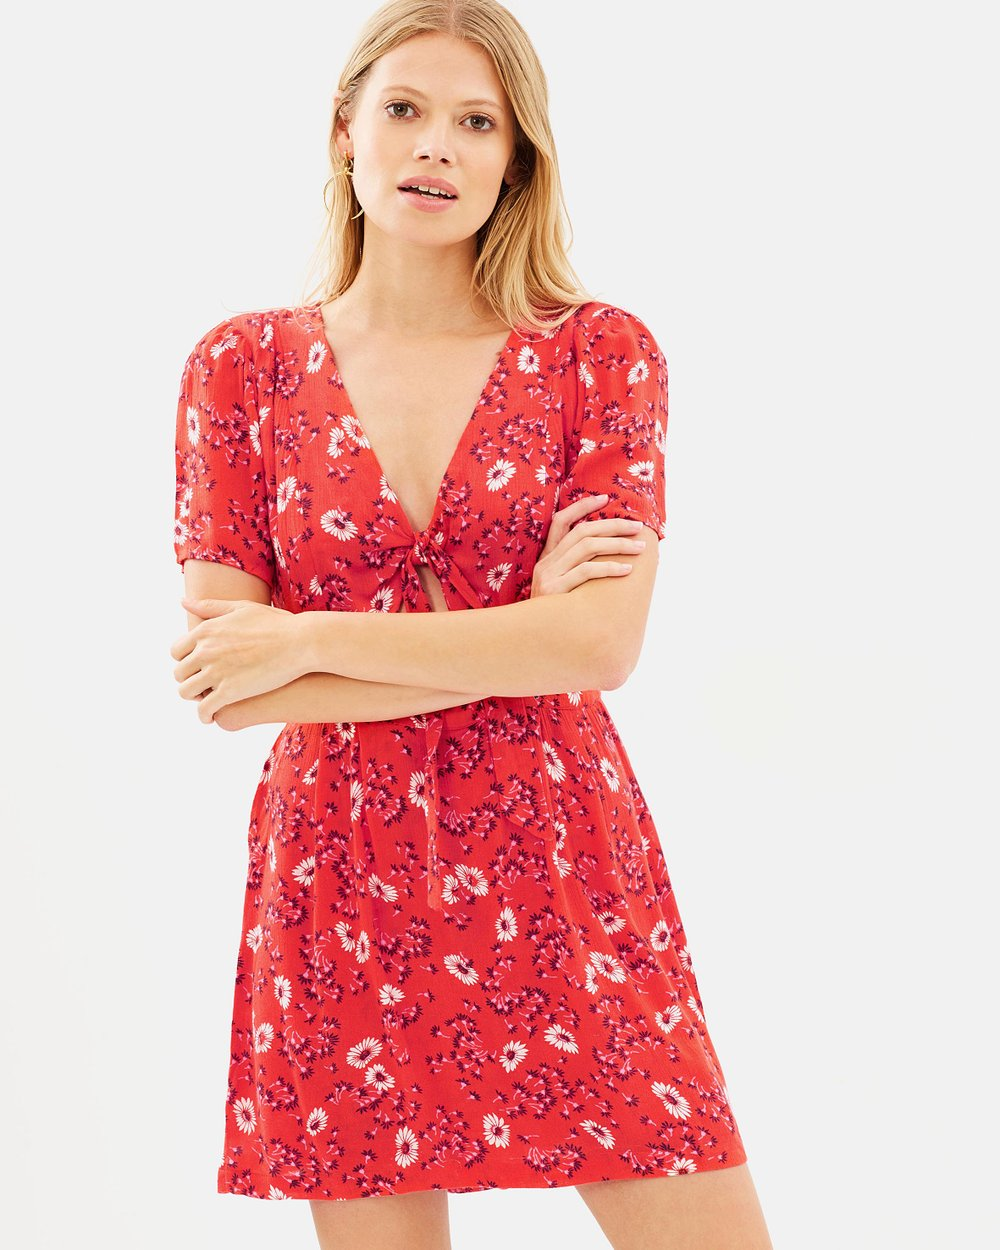 b274d5db4901a9 Jinx Romper by Free People Online | THE ICONIC | Australia